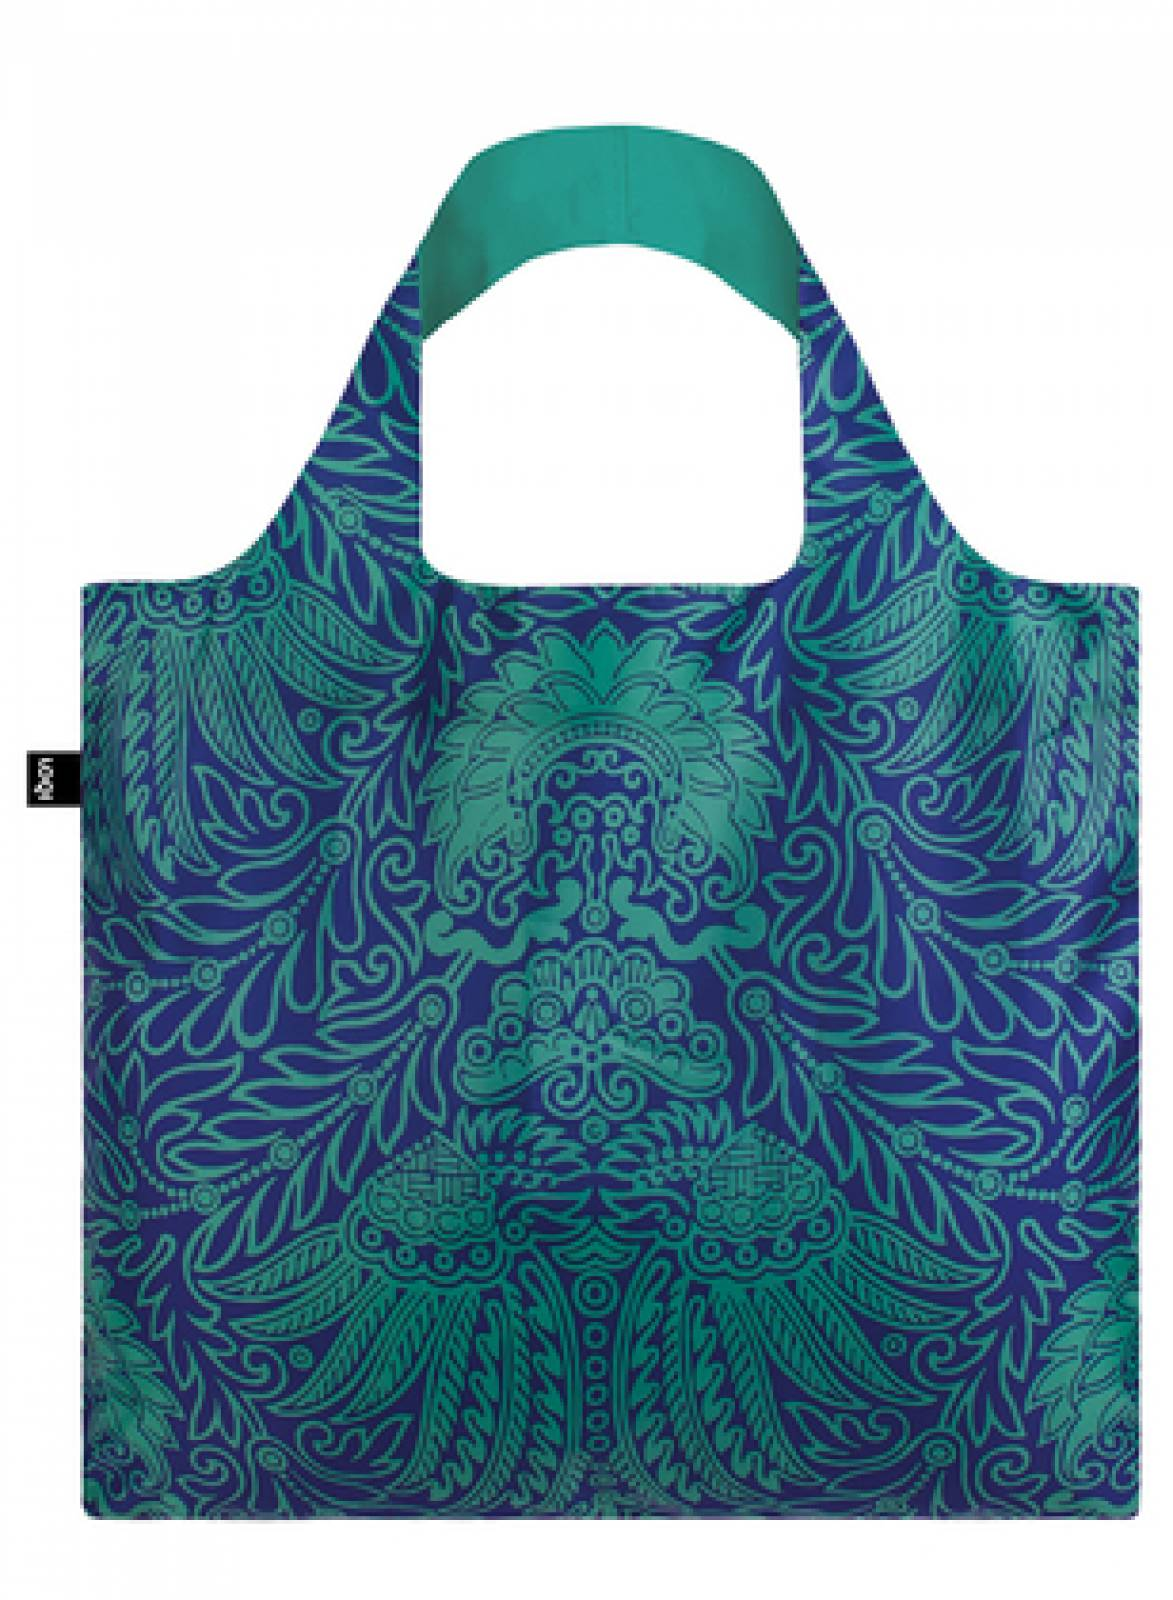 Japanese Decor - Reusable Tote Bag With Pouch